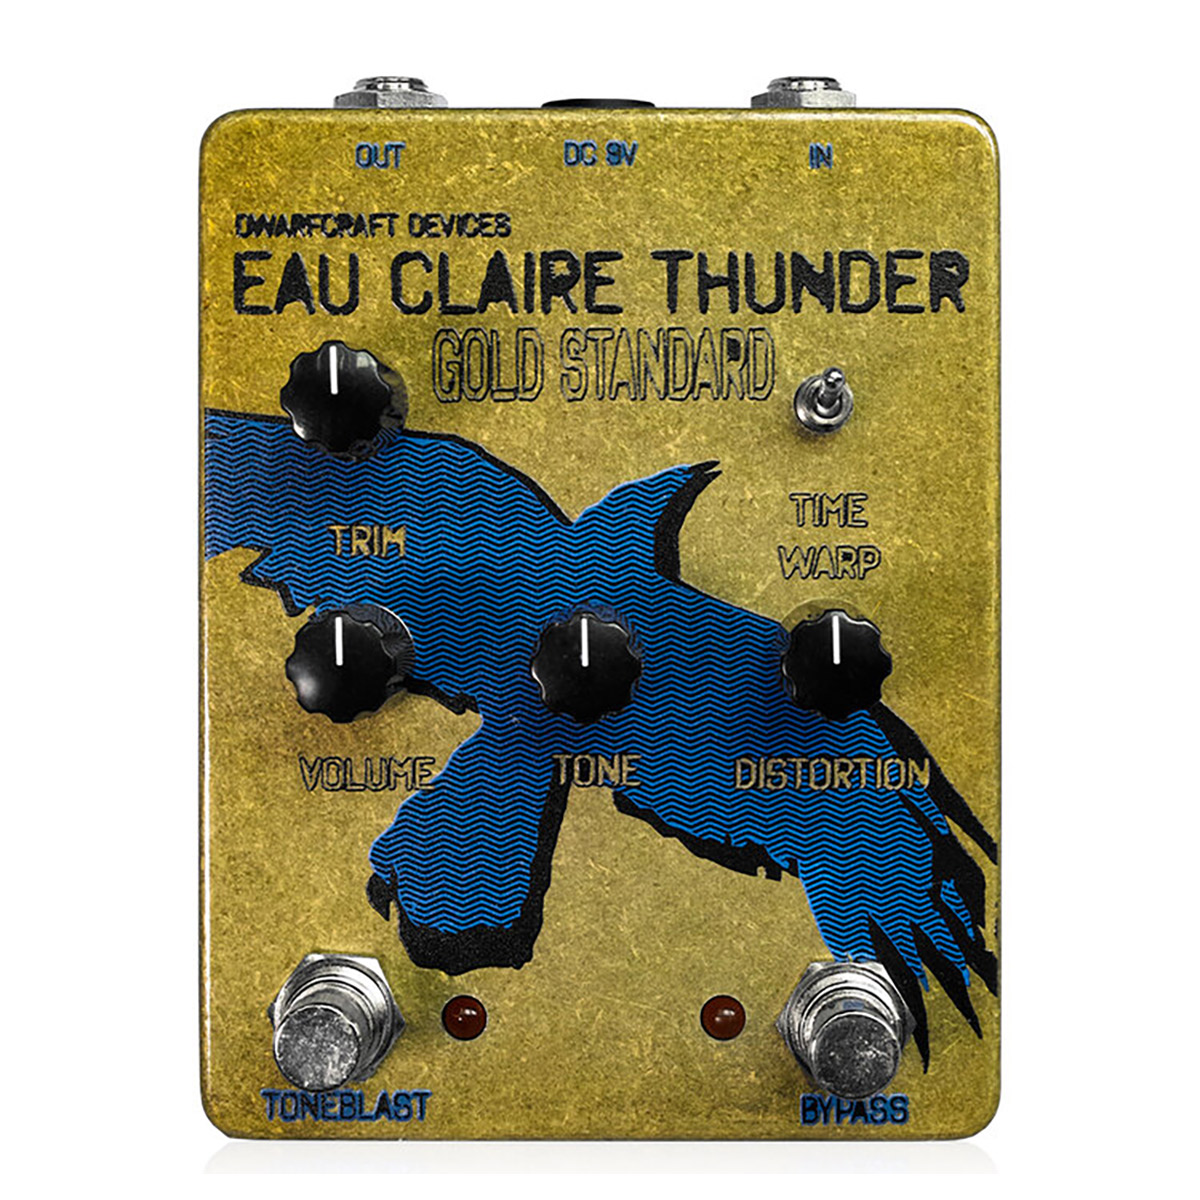 dwarfcraft devices Gold Standard Eau Claire Thunder コンパクトエフェクター ファズ 【ドワーフクラフトデヴァイセズ】